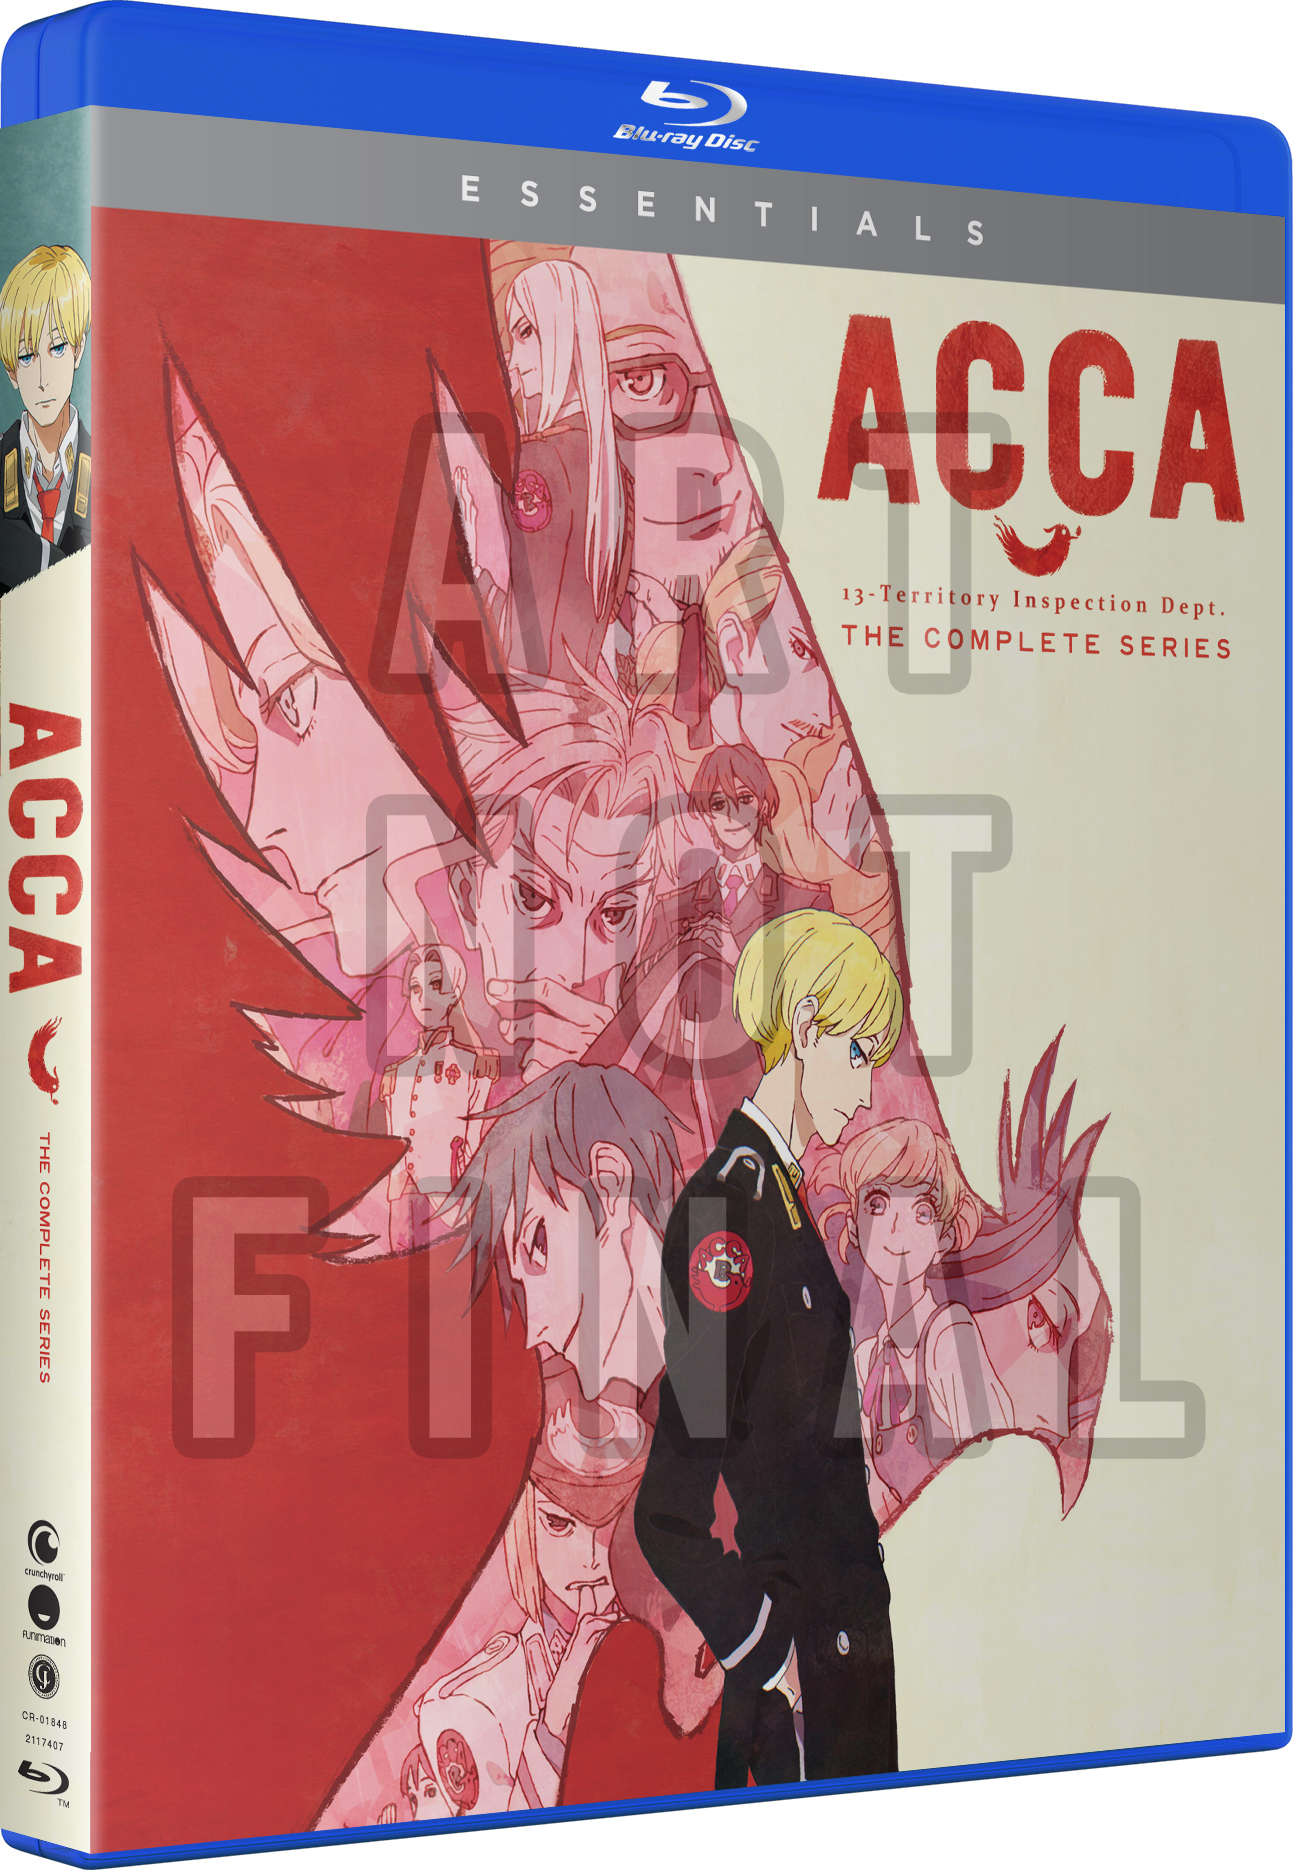 ACCA 13 Territory Inspection Dept Essentials Blu-ray